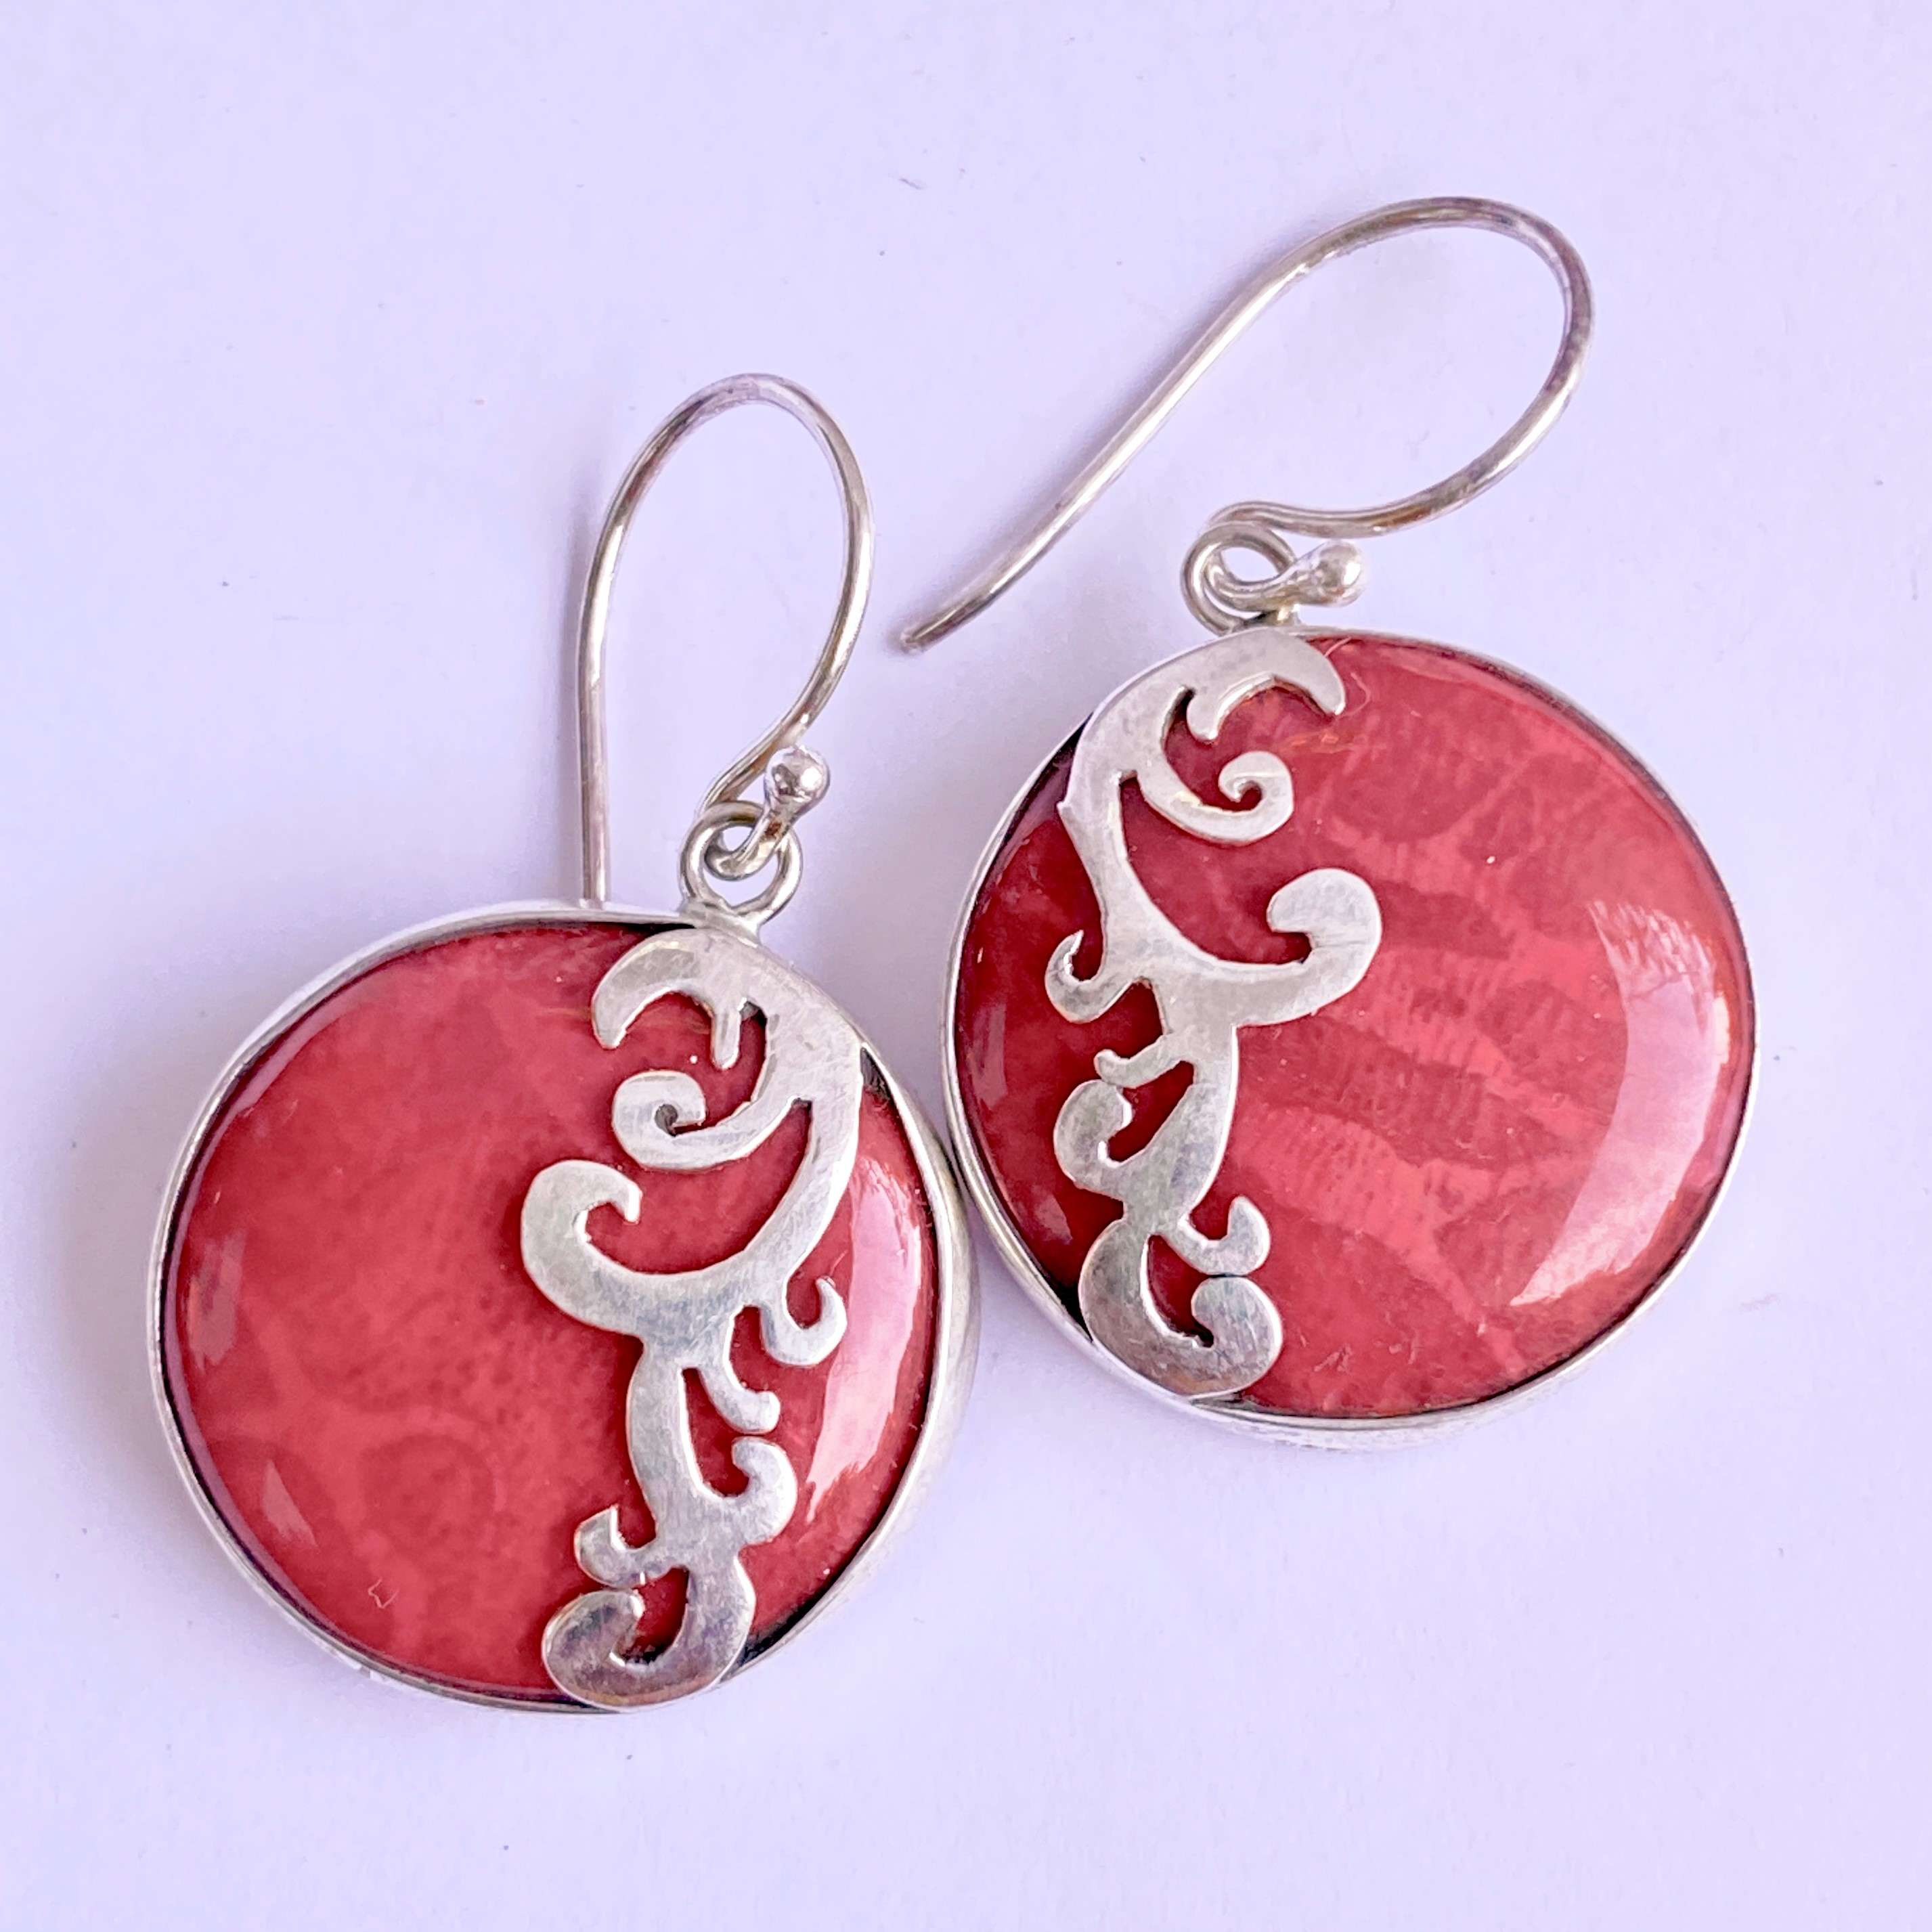 (HANDMADE 925 BALI SILVER EARRINGS WITH ROUND CORAL)